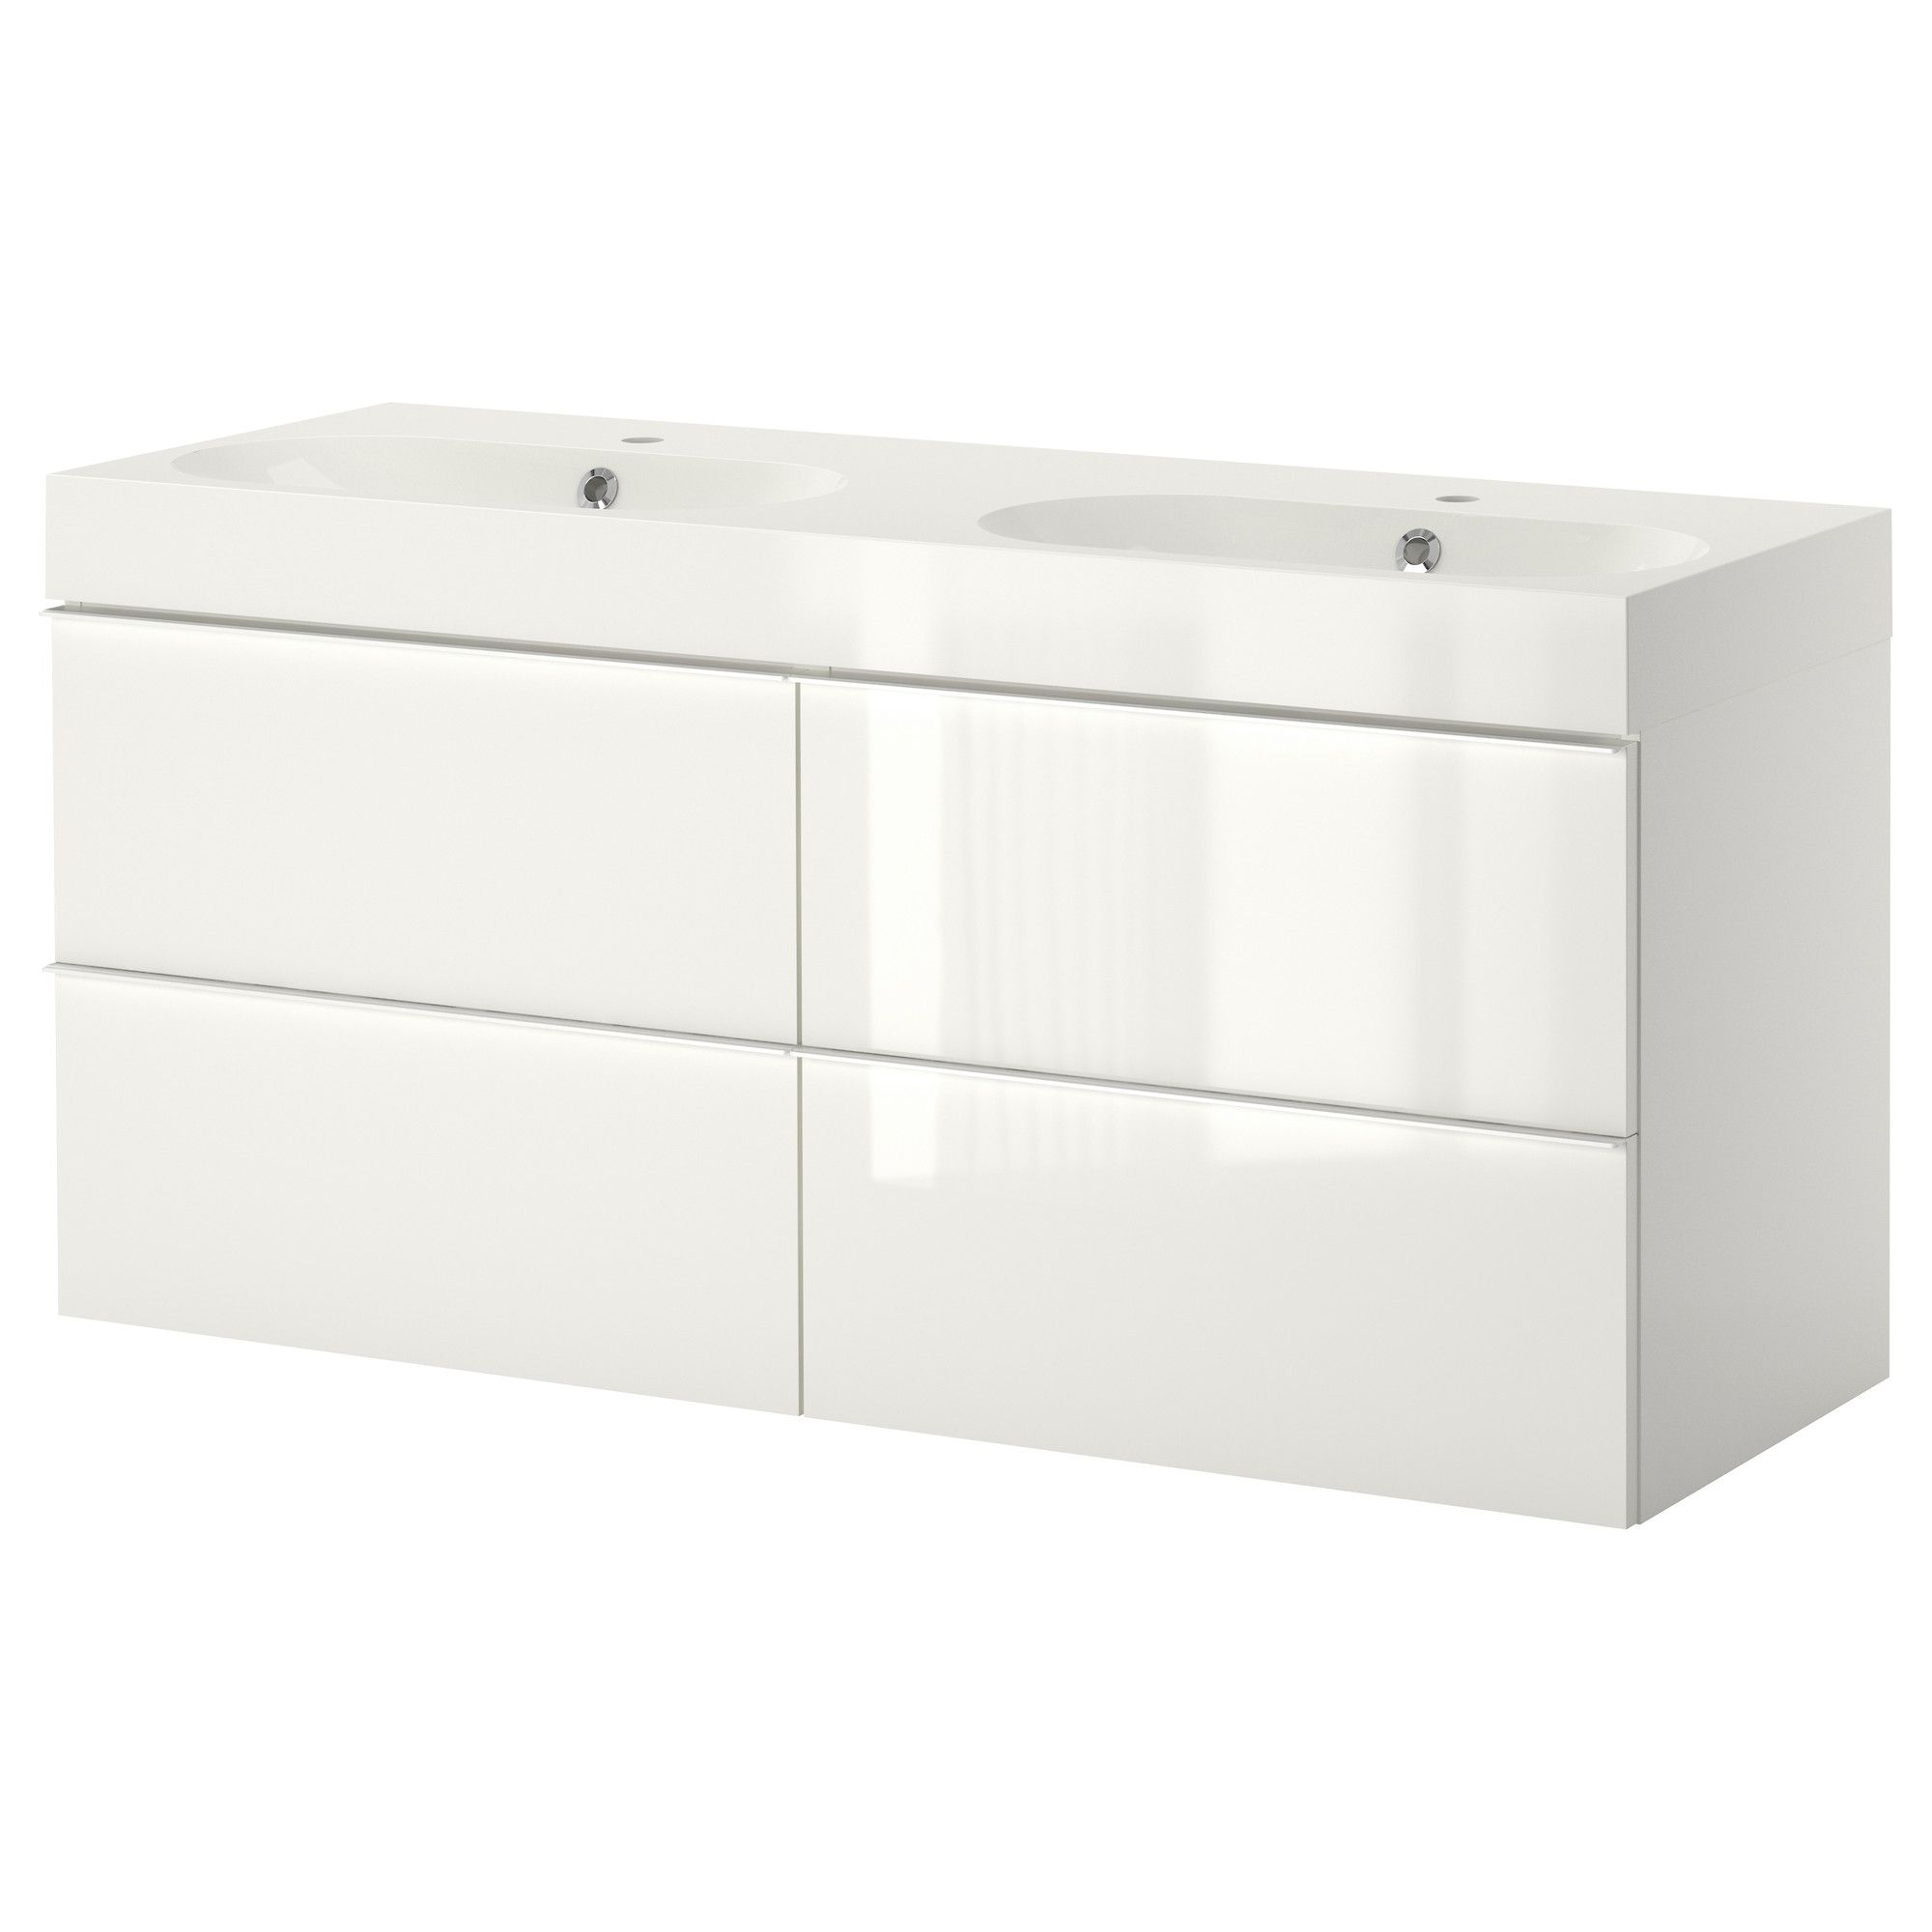 Photo Gallery In Website GODMORGON BR VIKEN Sink cabinet with drawers high gloss white IKEA Bathroom Sink CabinetsIkea